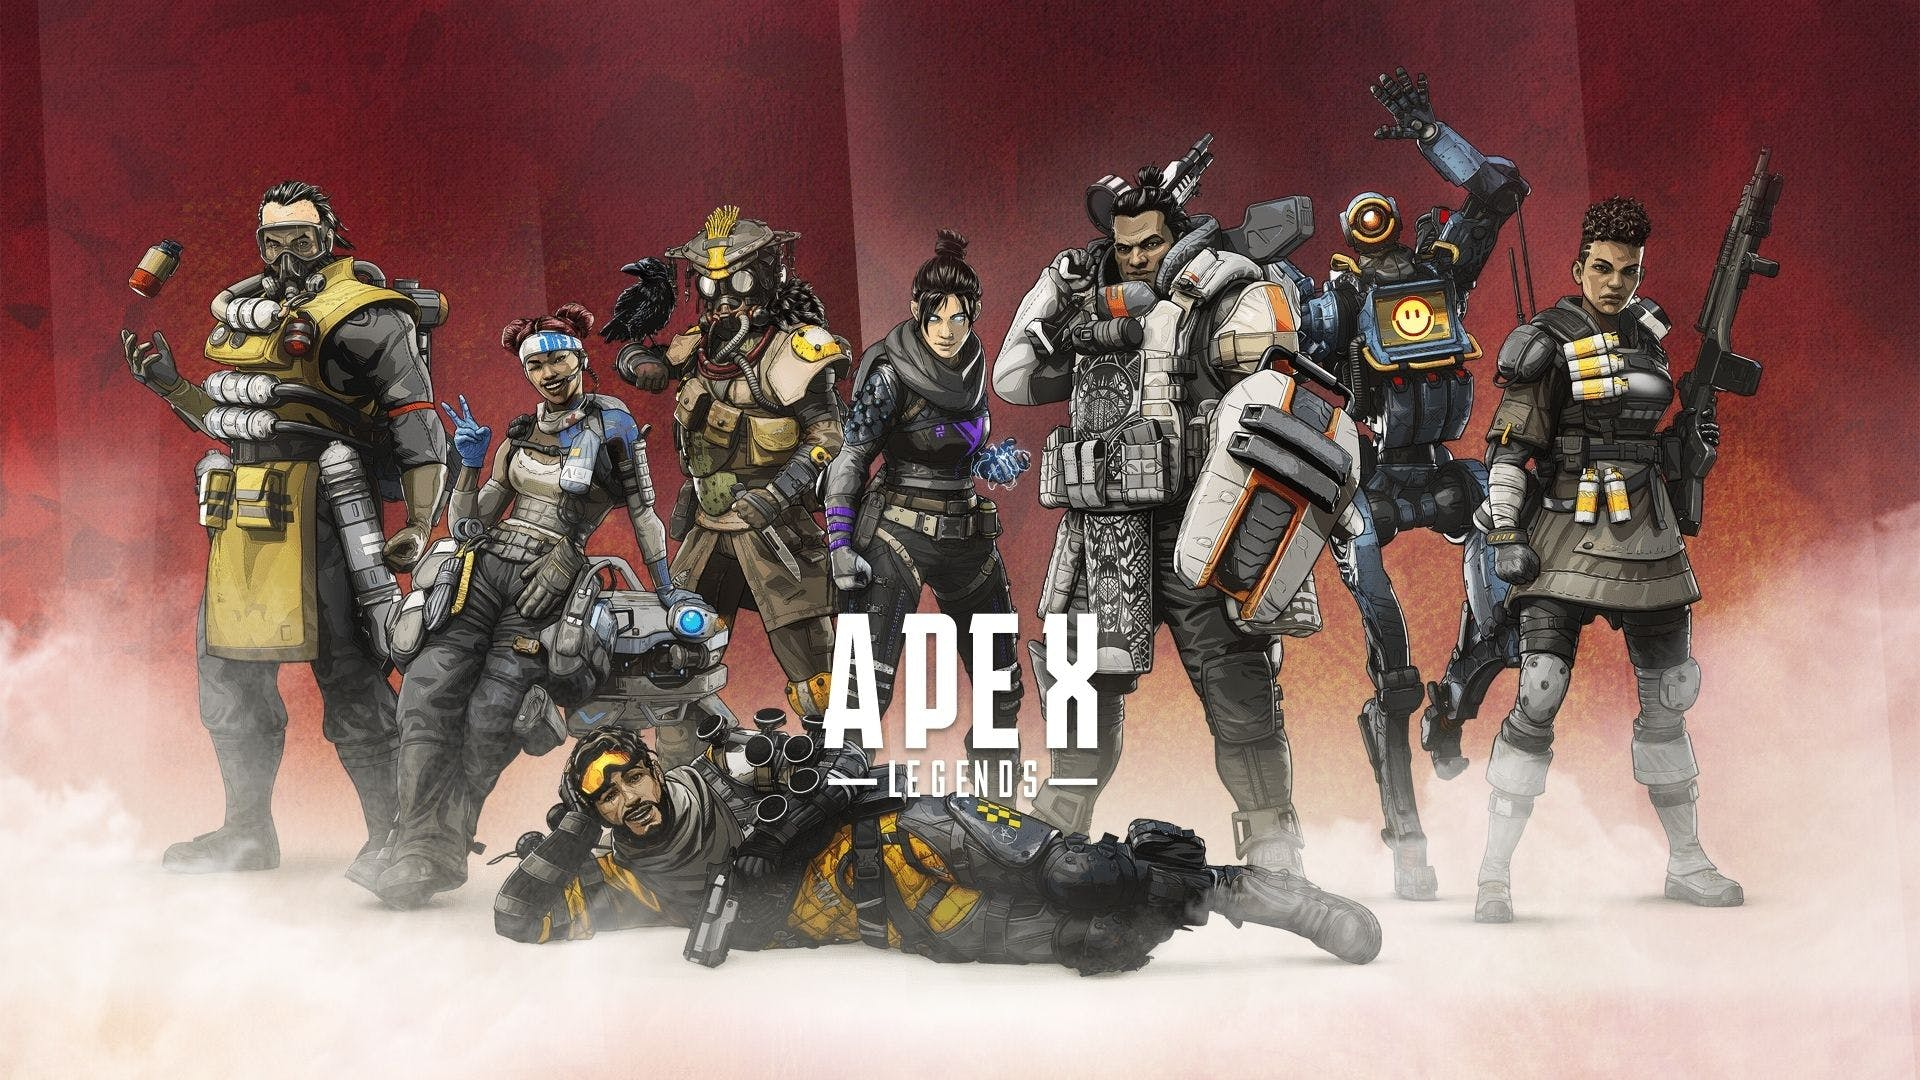 Image of characters from the game Apex Legends